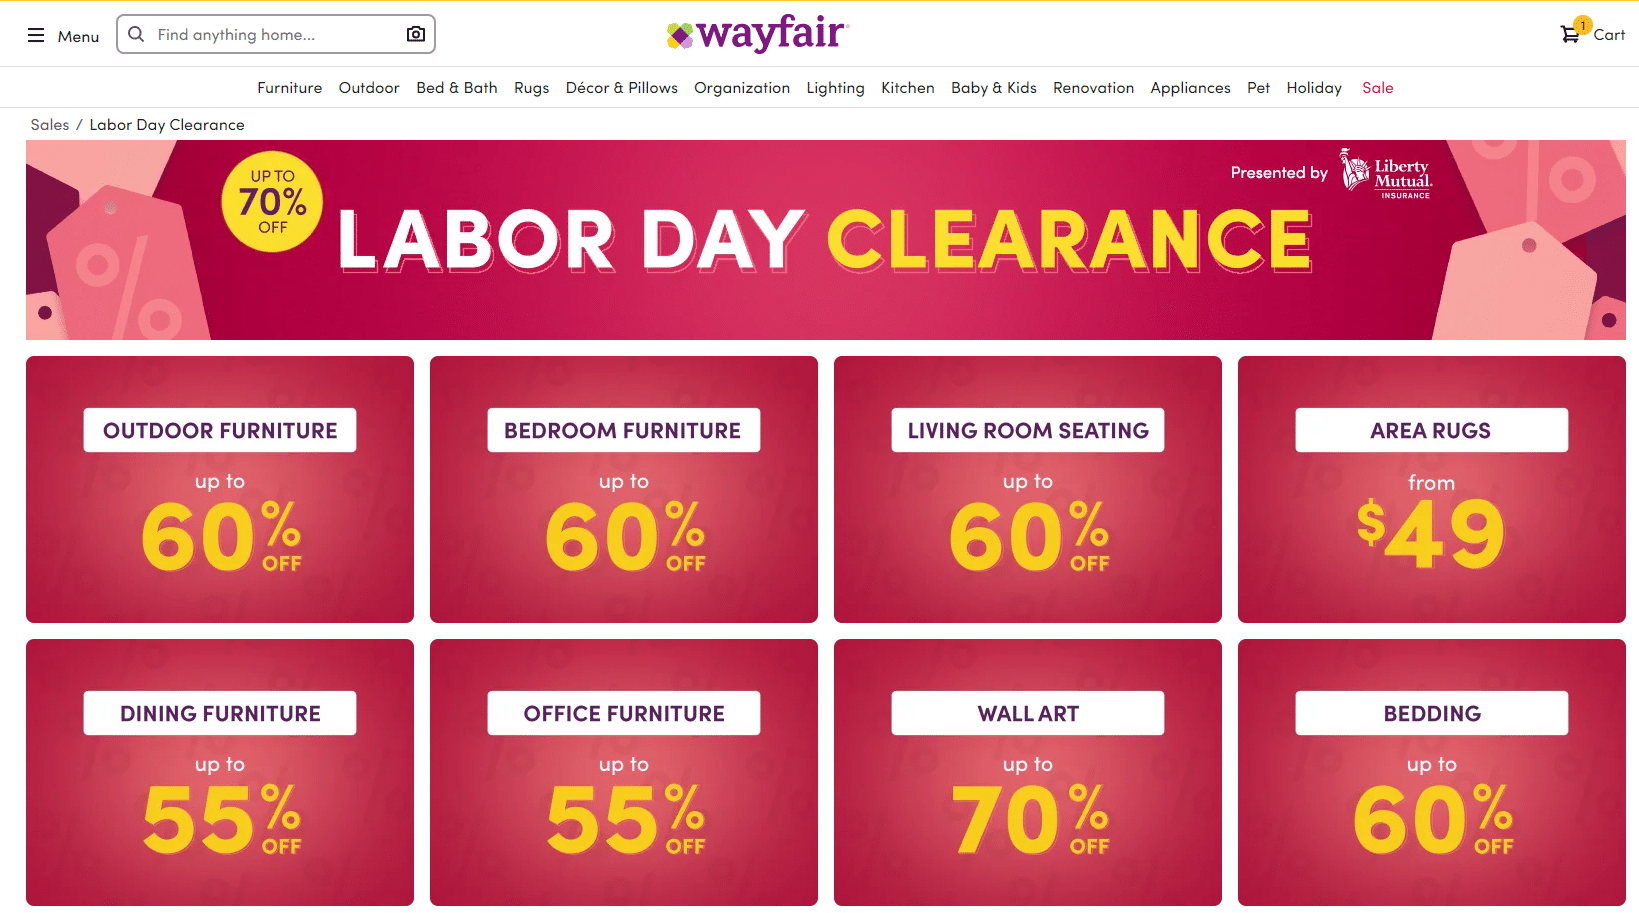 wayfair.com labor day clearance